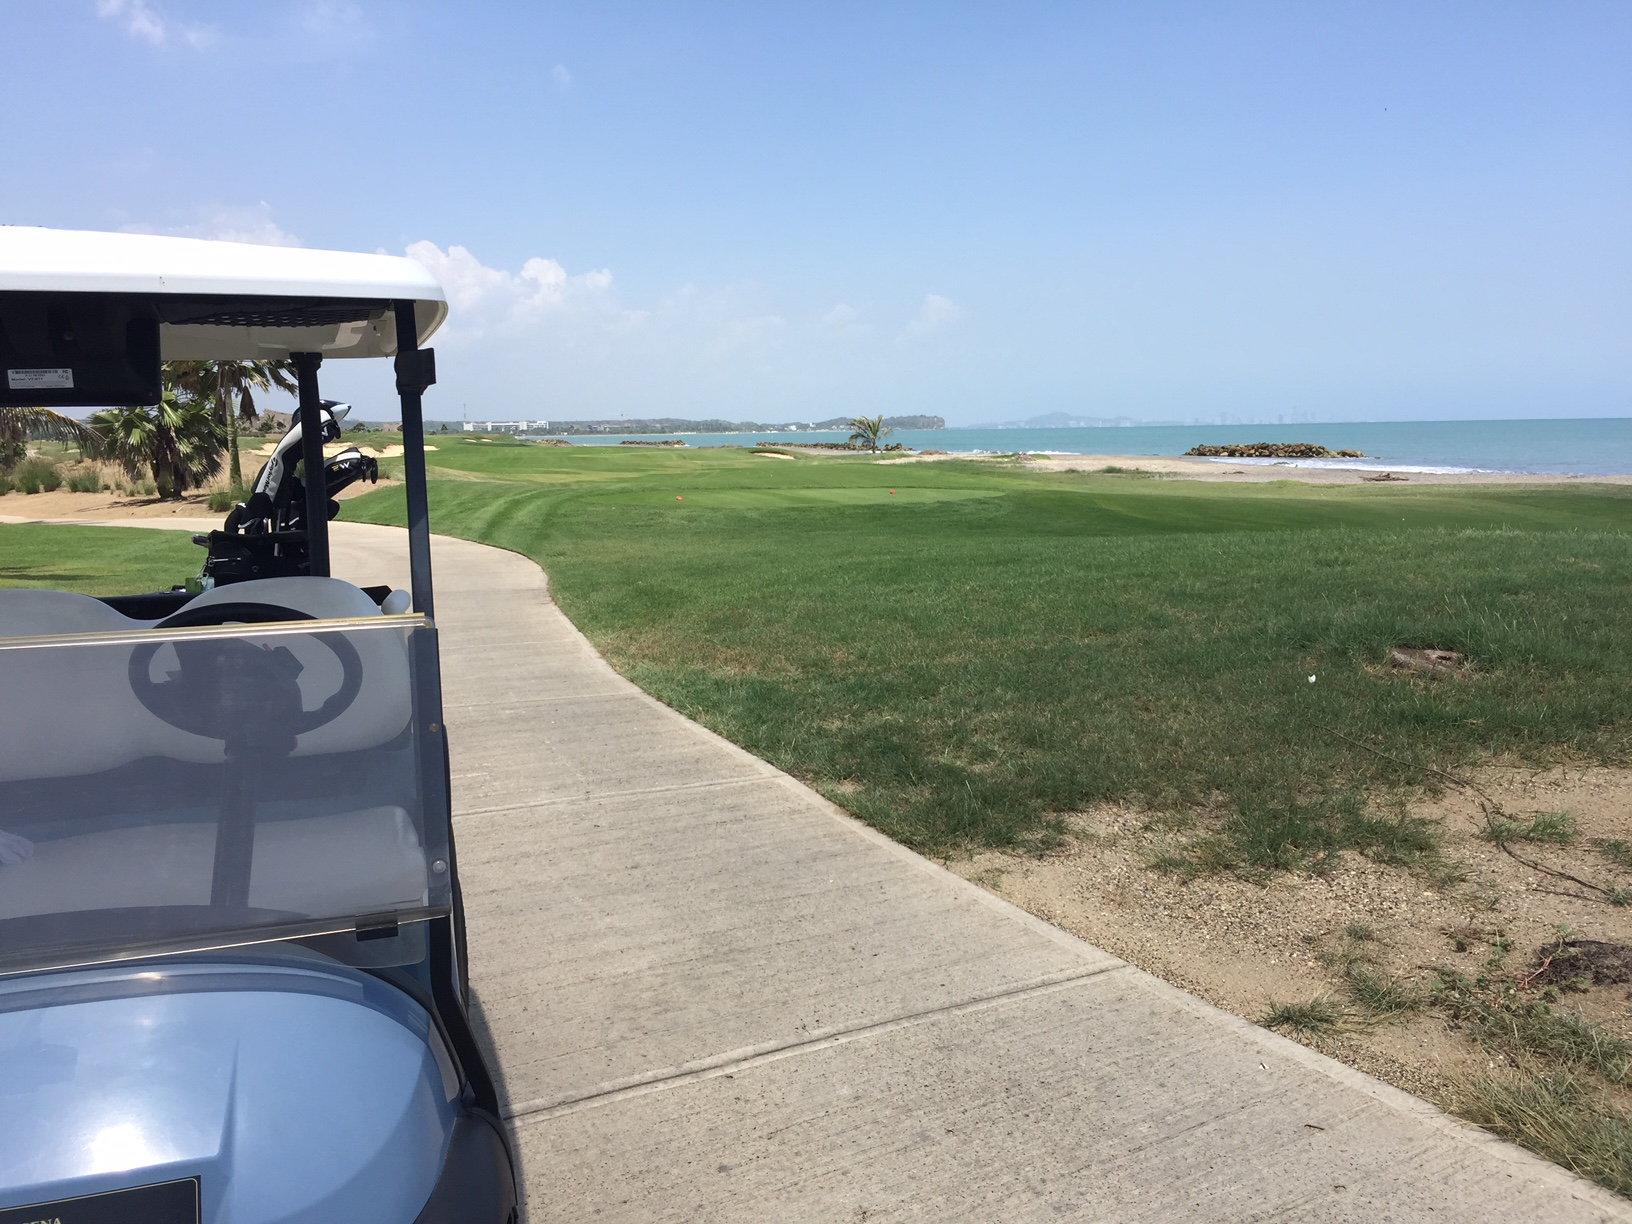 Karibana Beach Resort (Cartagena, Colombia) // Foto: Nación Golf